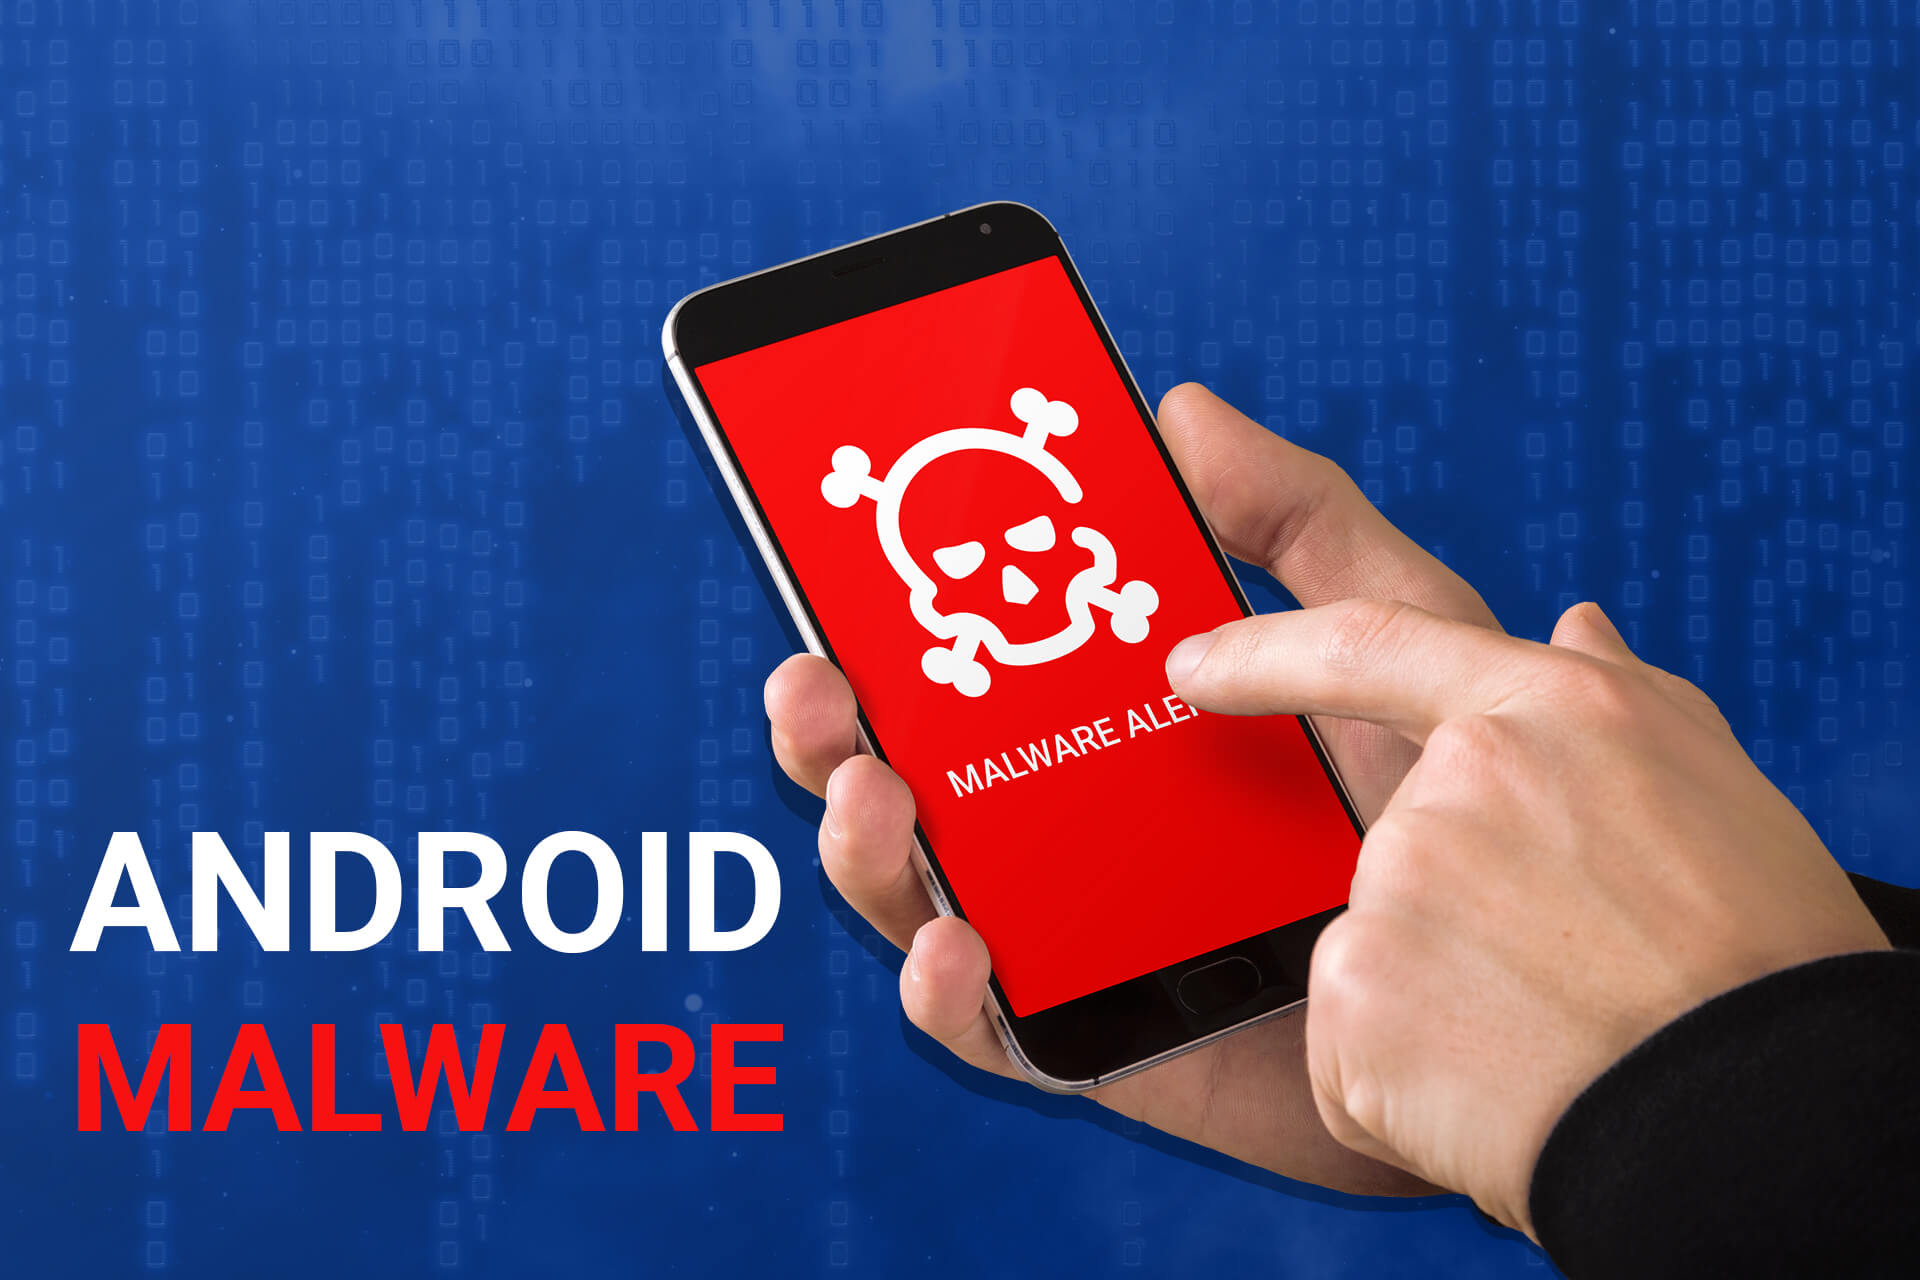 Android -Malware